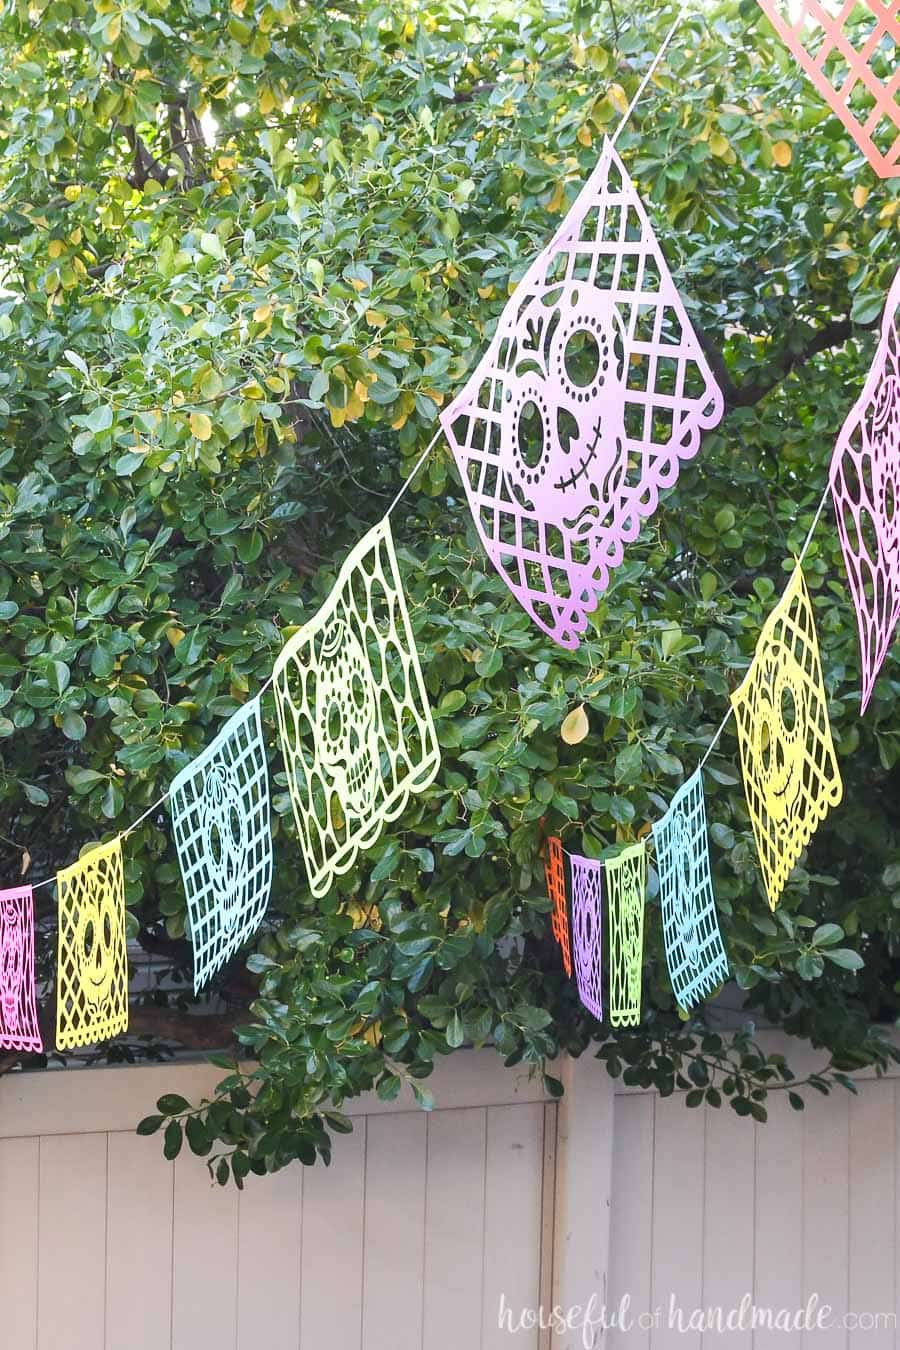 Picture of colorful halloween paper banners hanging outside with sugar skull designs on them.